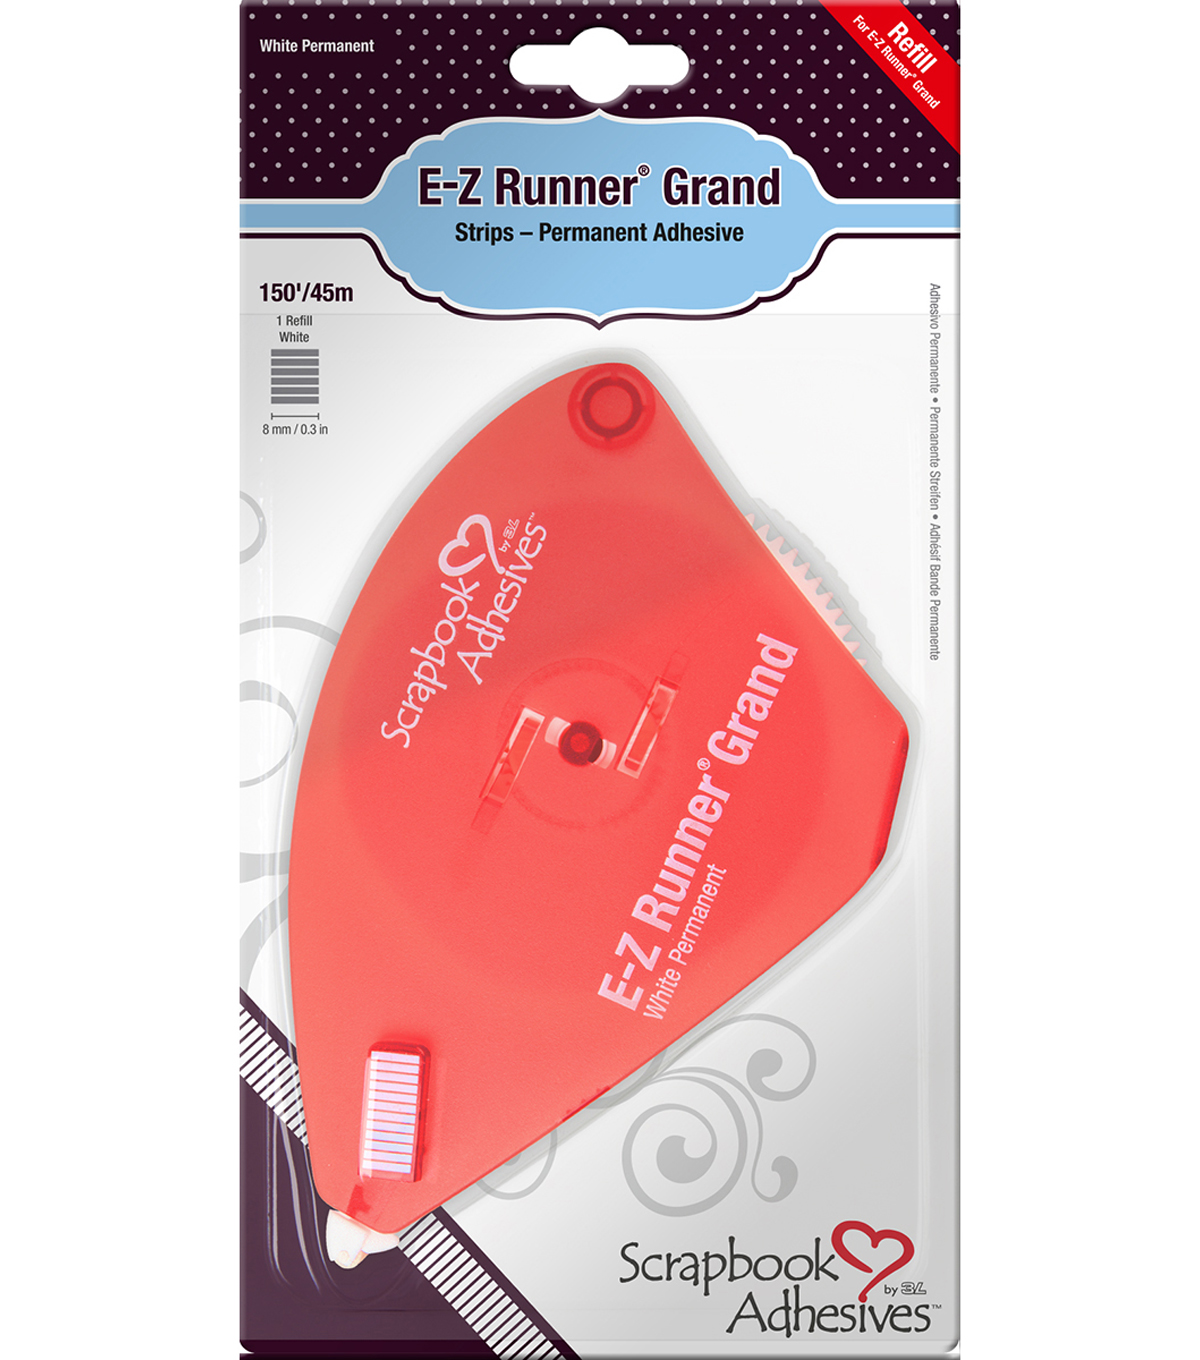 Scrapbook Adhesives E-Z Runner Grand Adhesive Refill-Permanent|